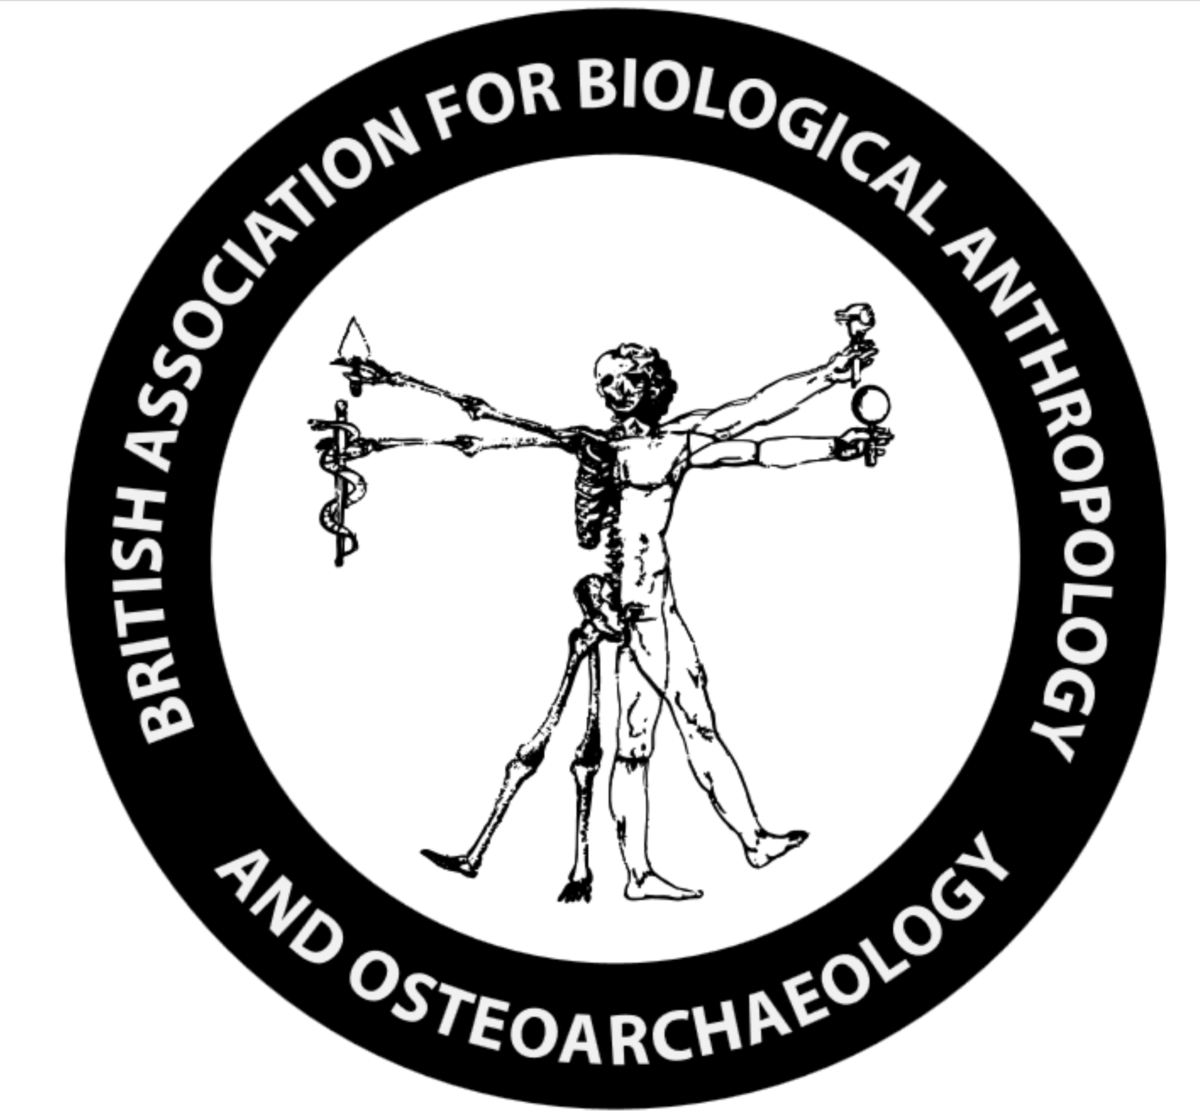 British Association of Biological Anthropology and Osteoarchaeology